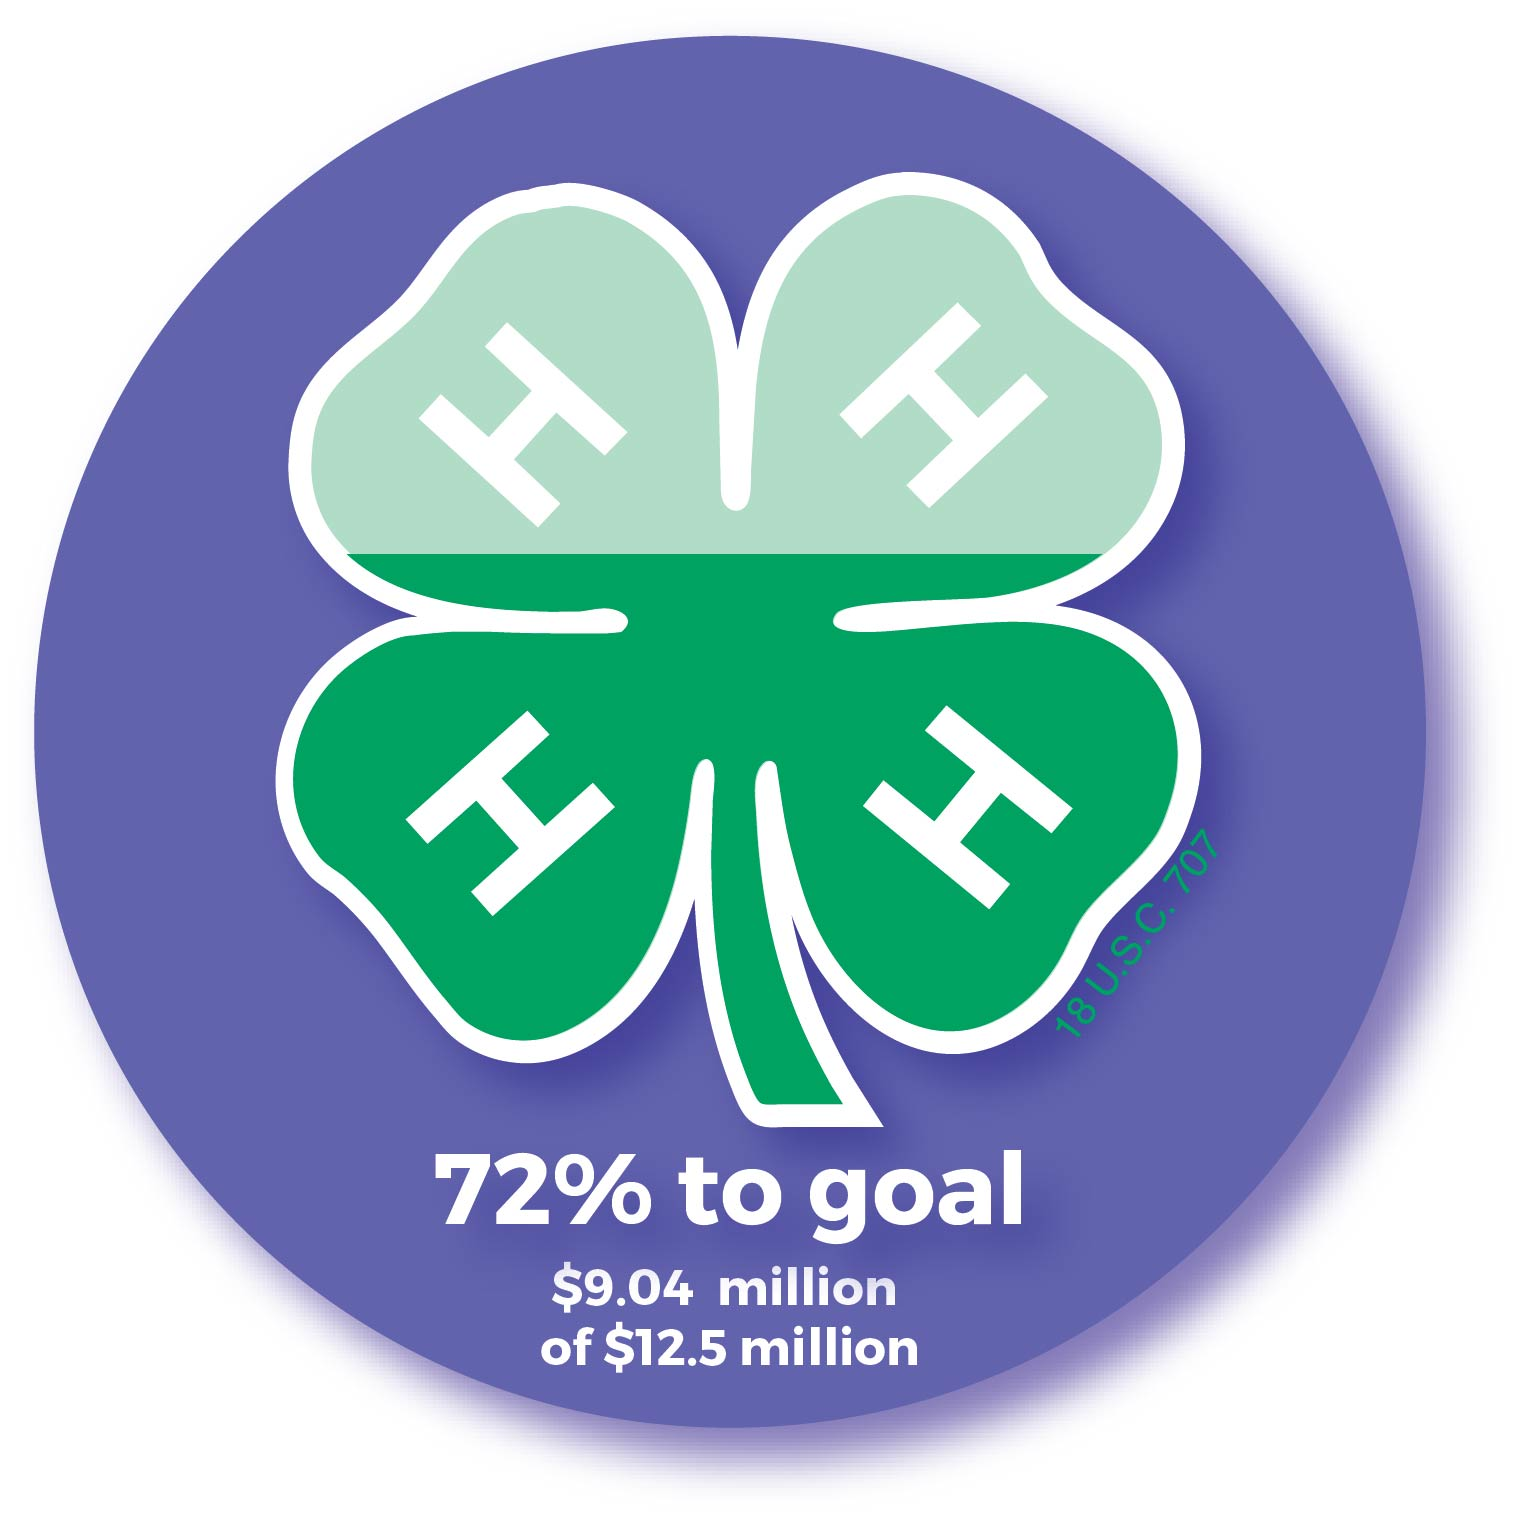 Campaign for Michigan 4-H's Future: 72% to goal ($9.04 million of $12.5 million)